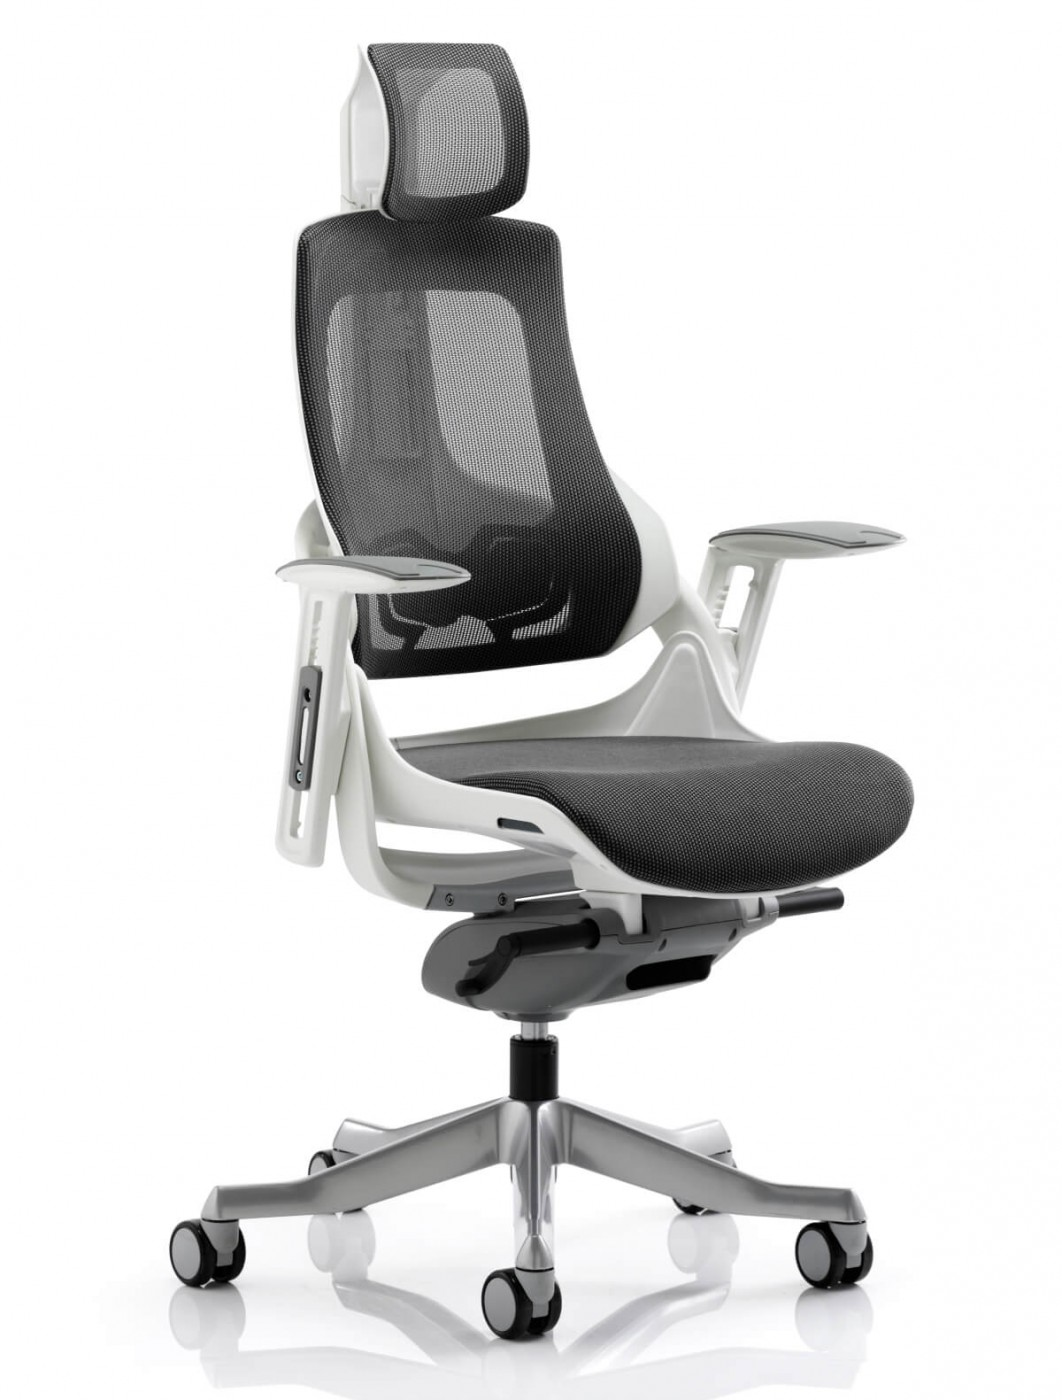 Zure Executive Fabric Office Chair With Headrest Kc0162